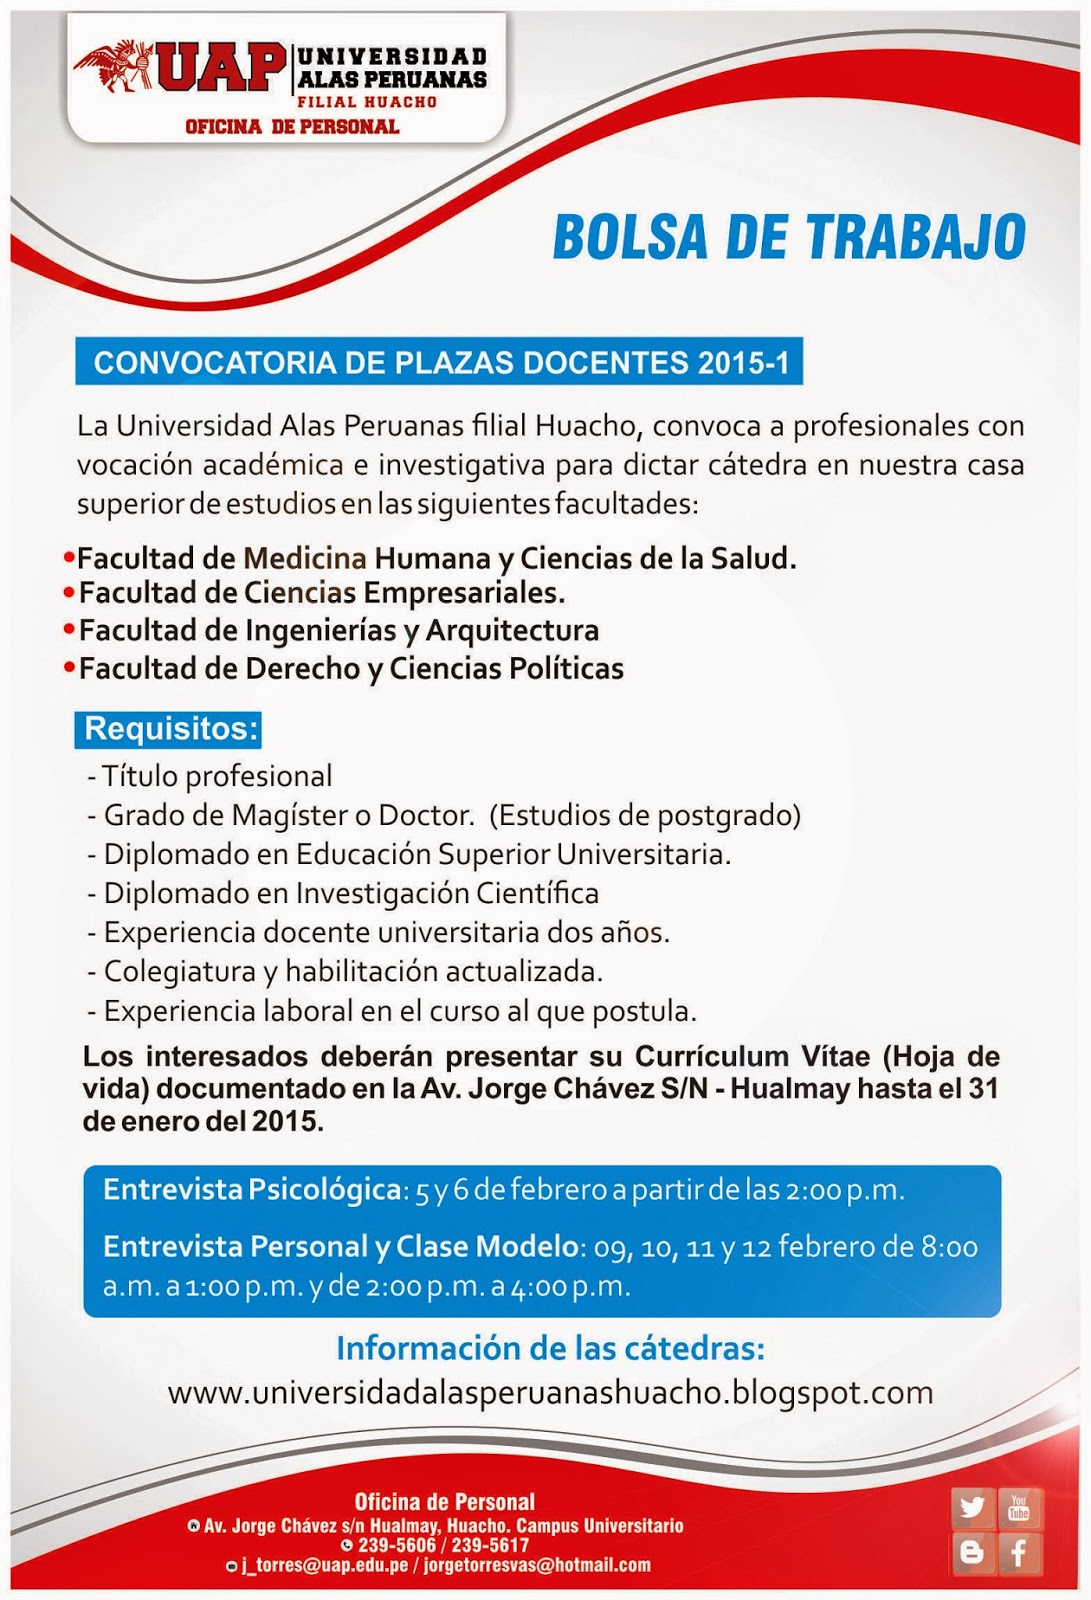 Universidad alas peruanas filial huacho convocatoria de for Convocatoria para plazas docentes